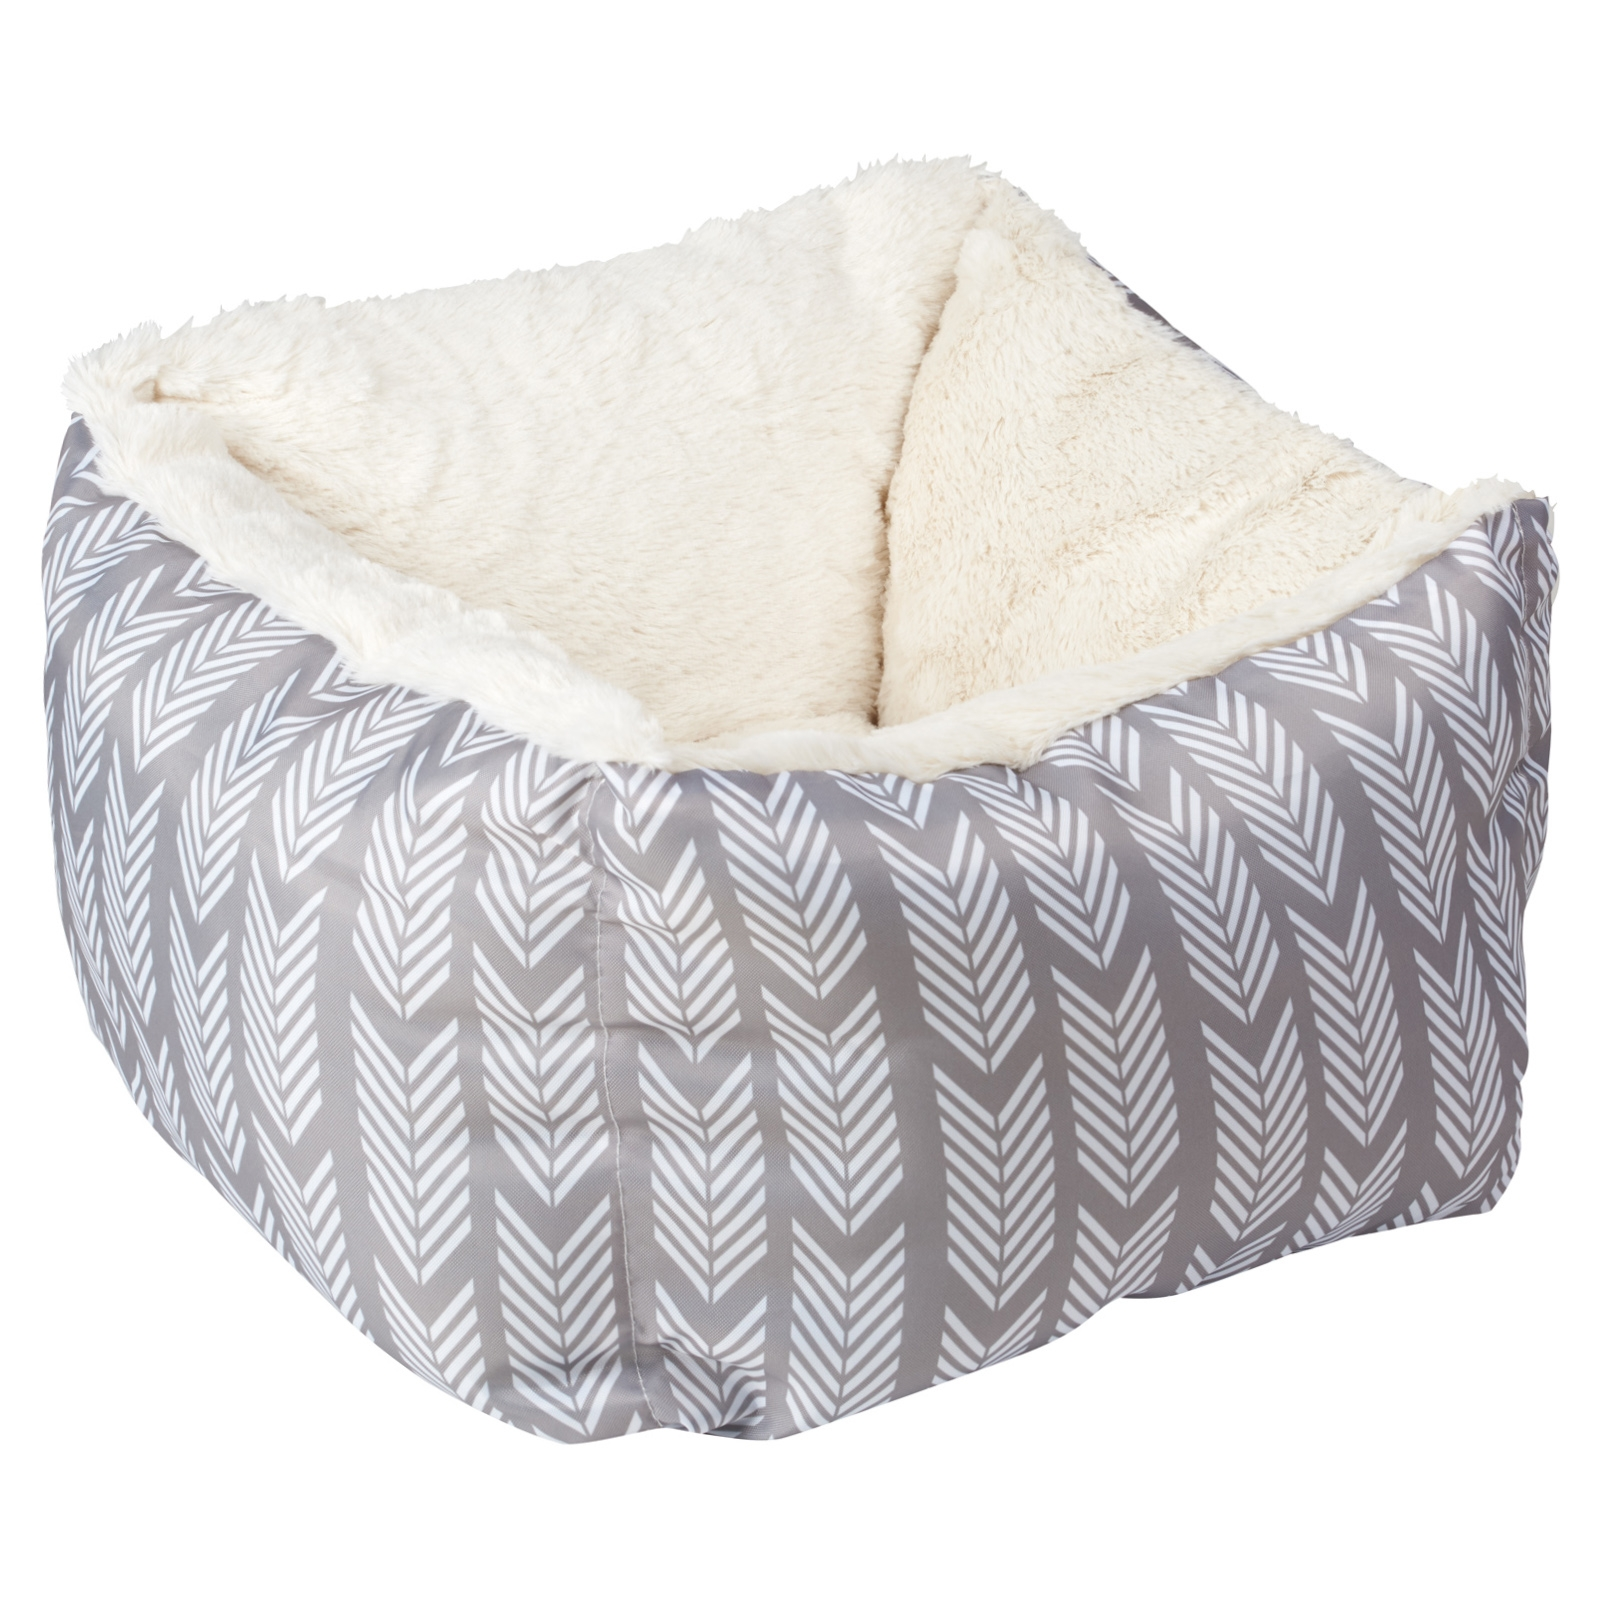 gorgeous grey and white aztec print snuggle bed with super fluffy fur on the inside